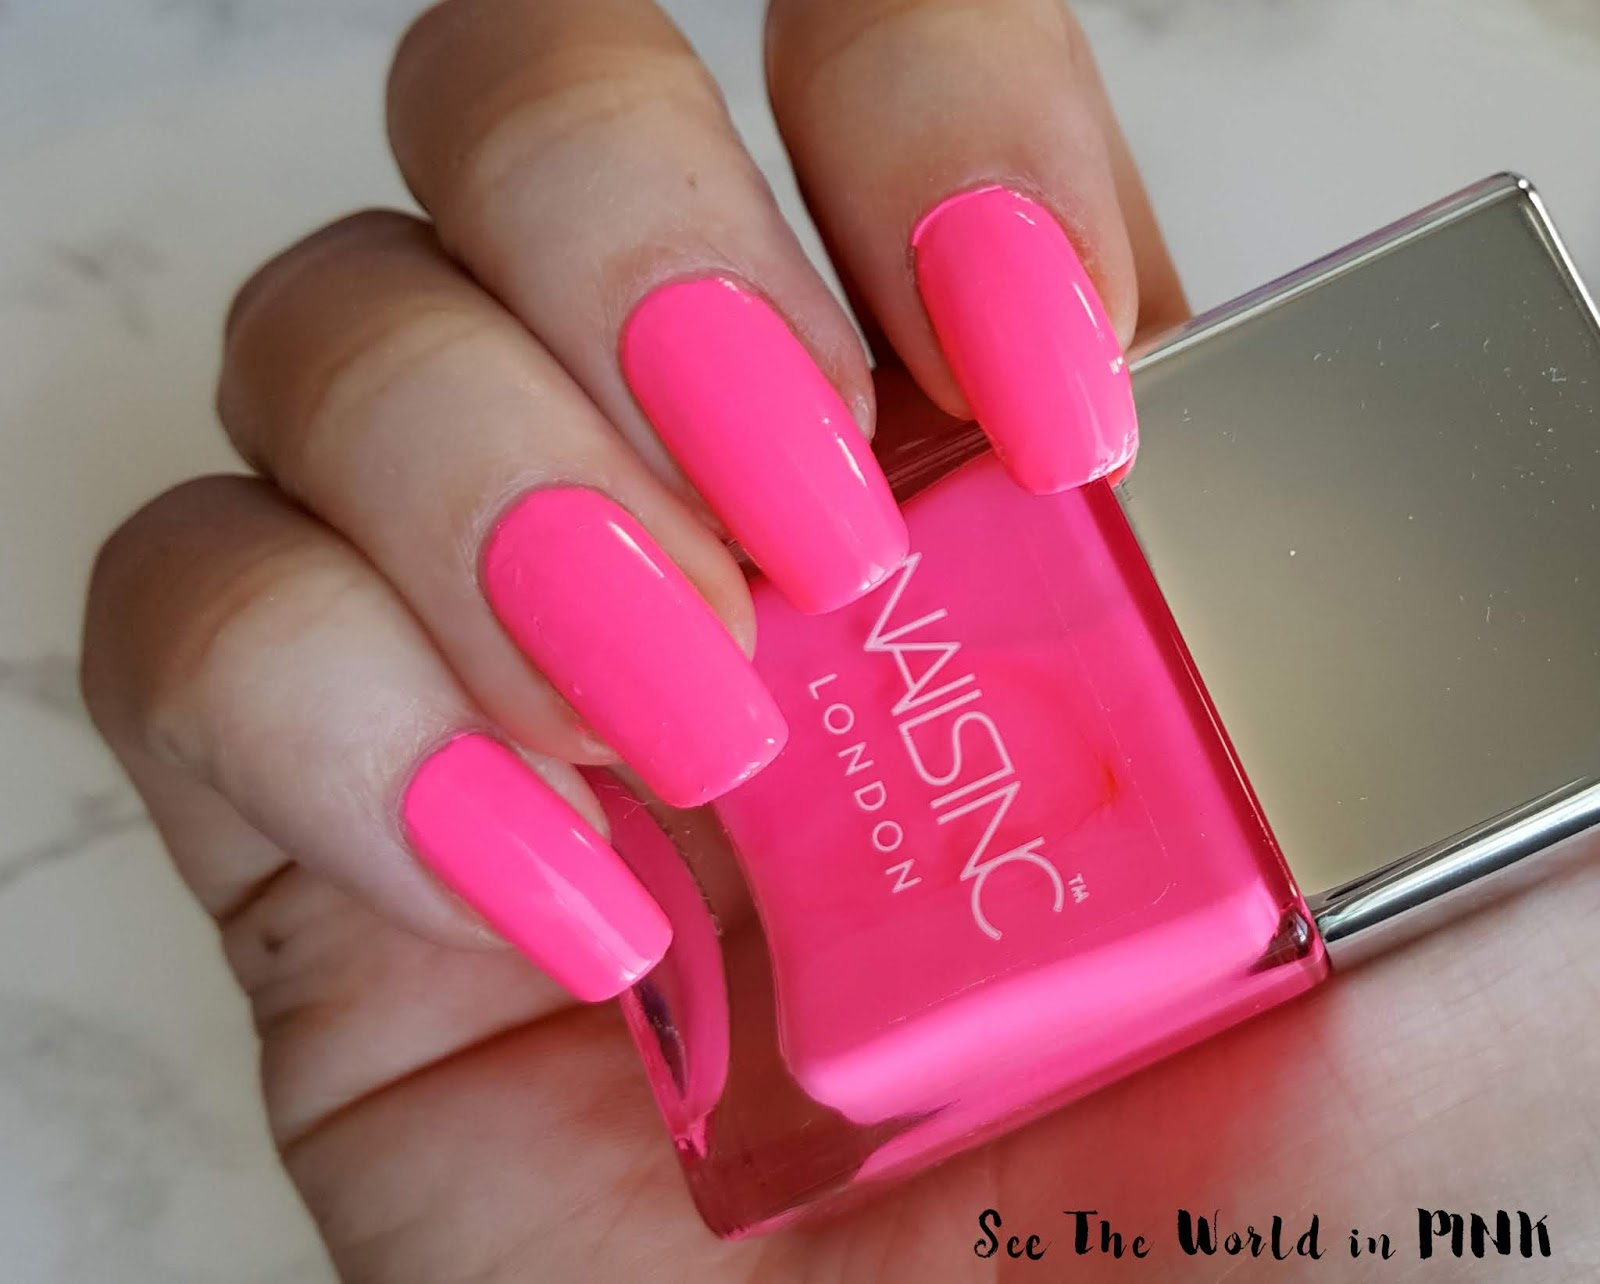 nails inc anything flamingoessss